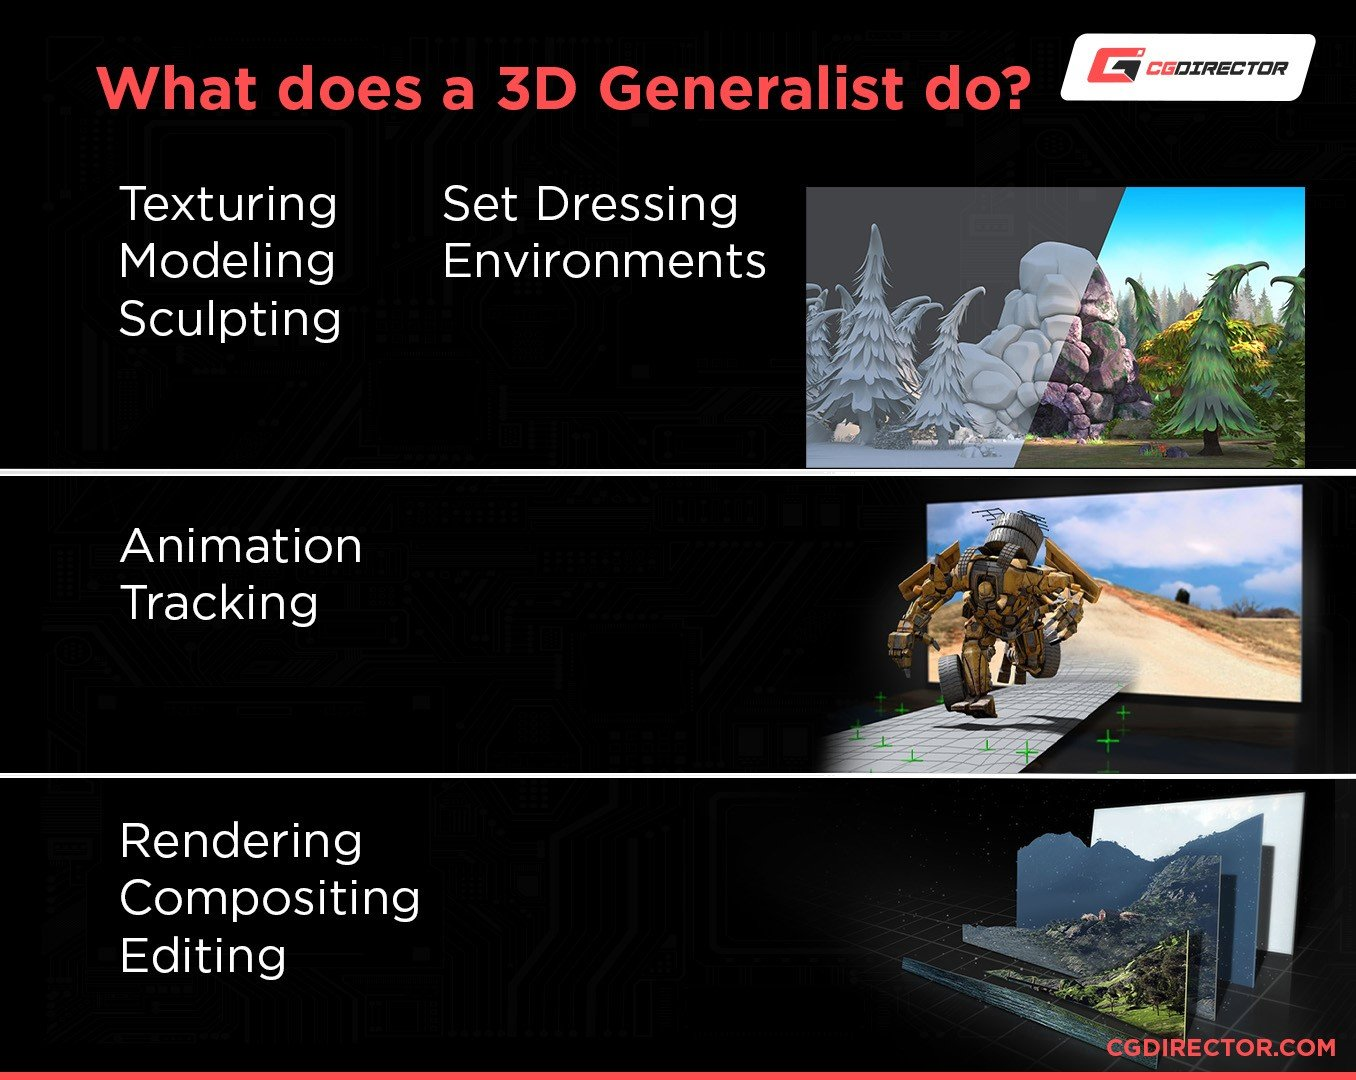 What does a 3D Generalist do